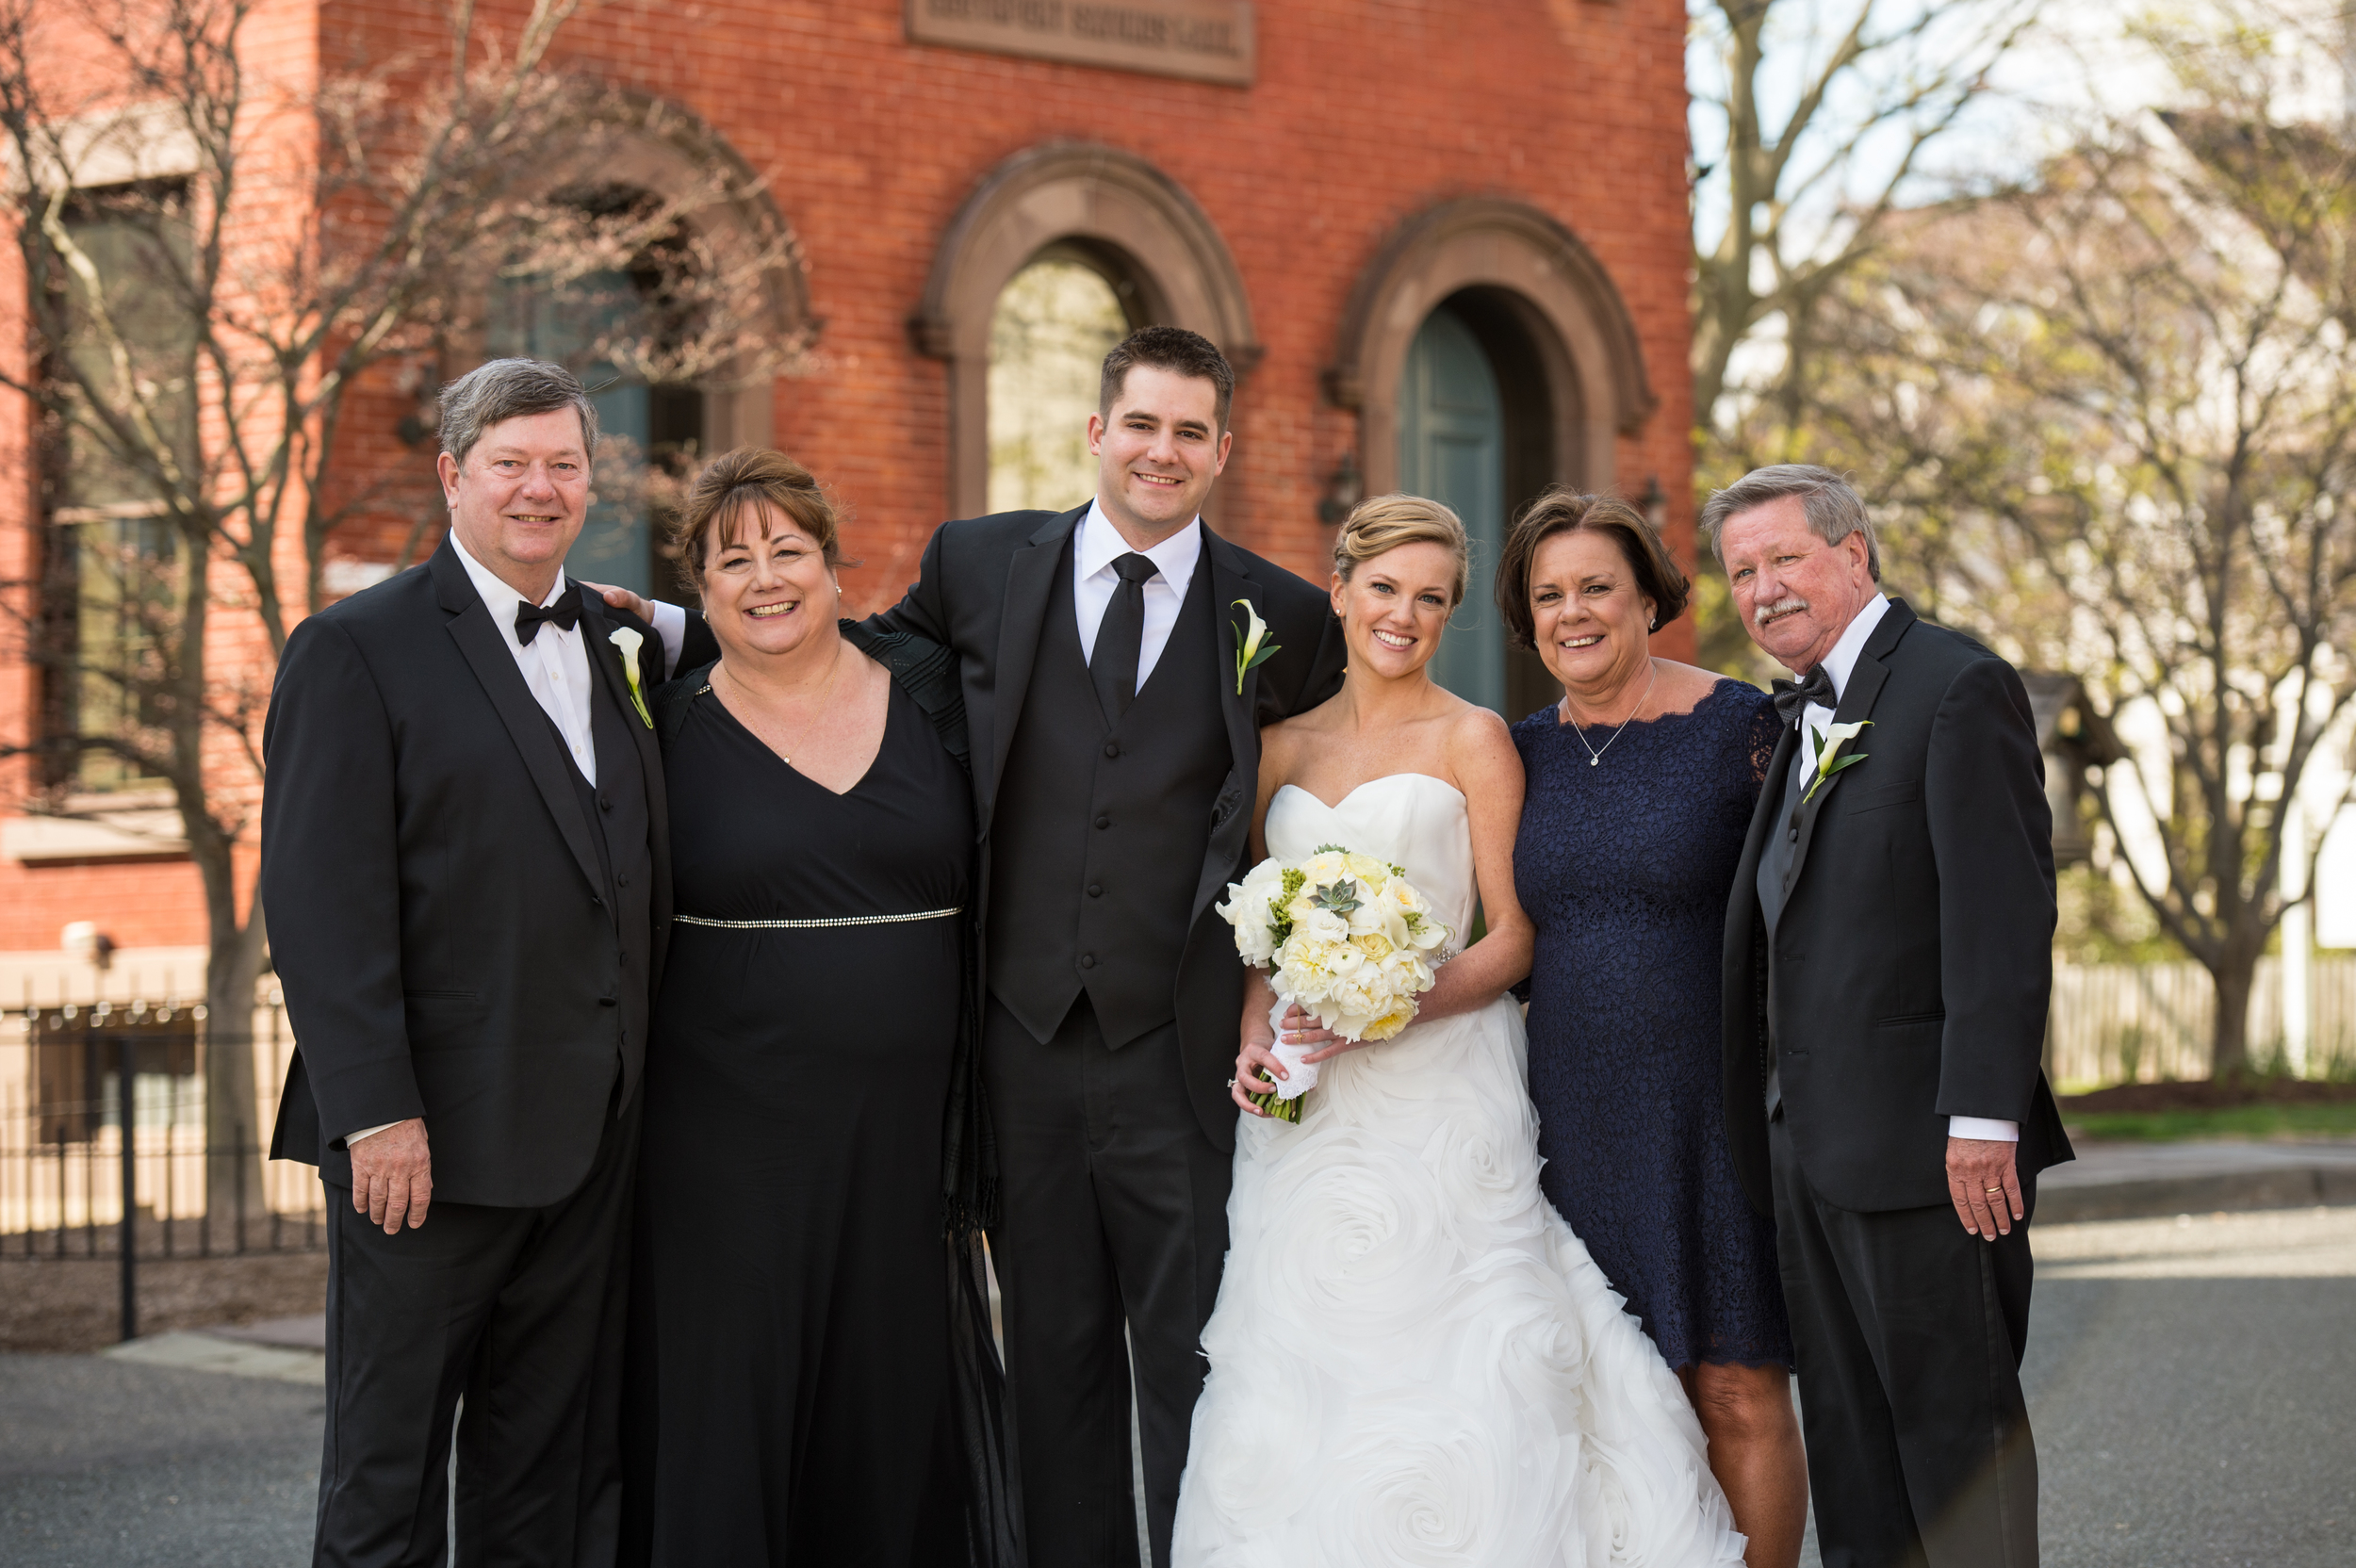 I LOVE Meghan & James' parents. They are absolutely wonderful. And Meghan's mom loves an exposed zipper dress. She knows what's up.